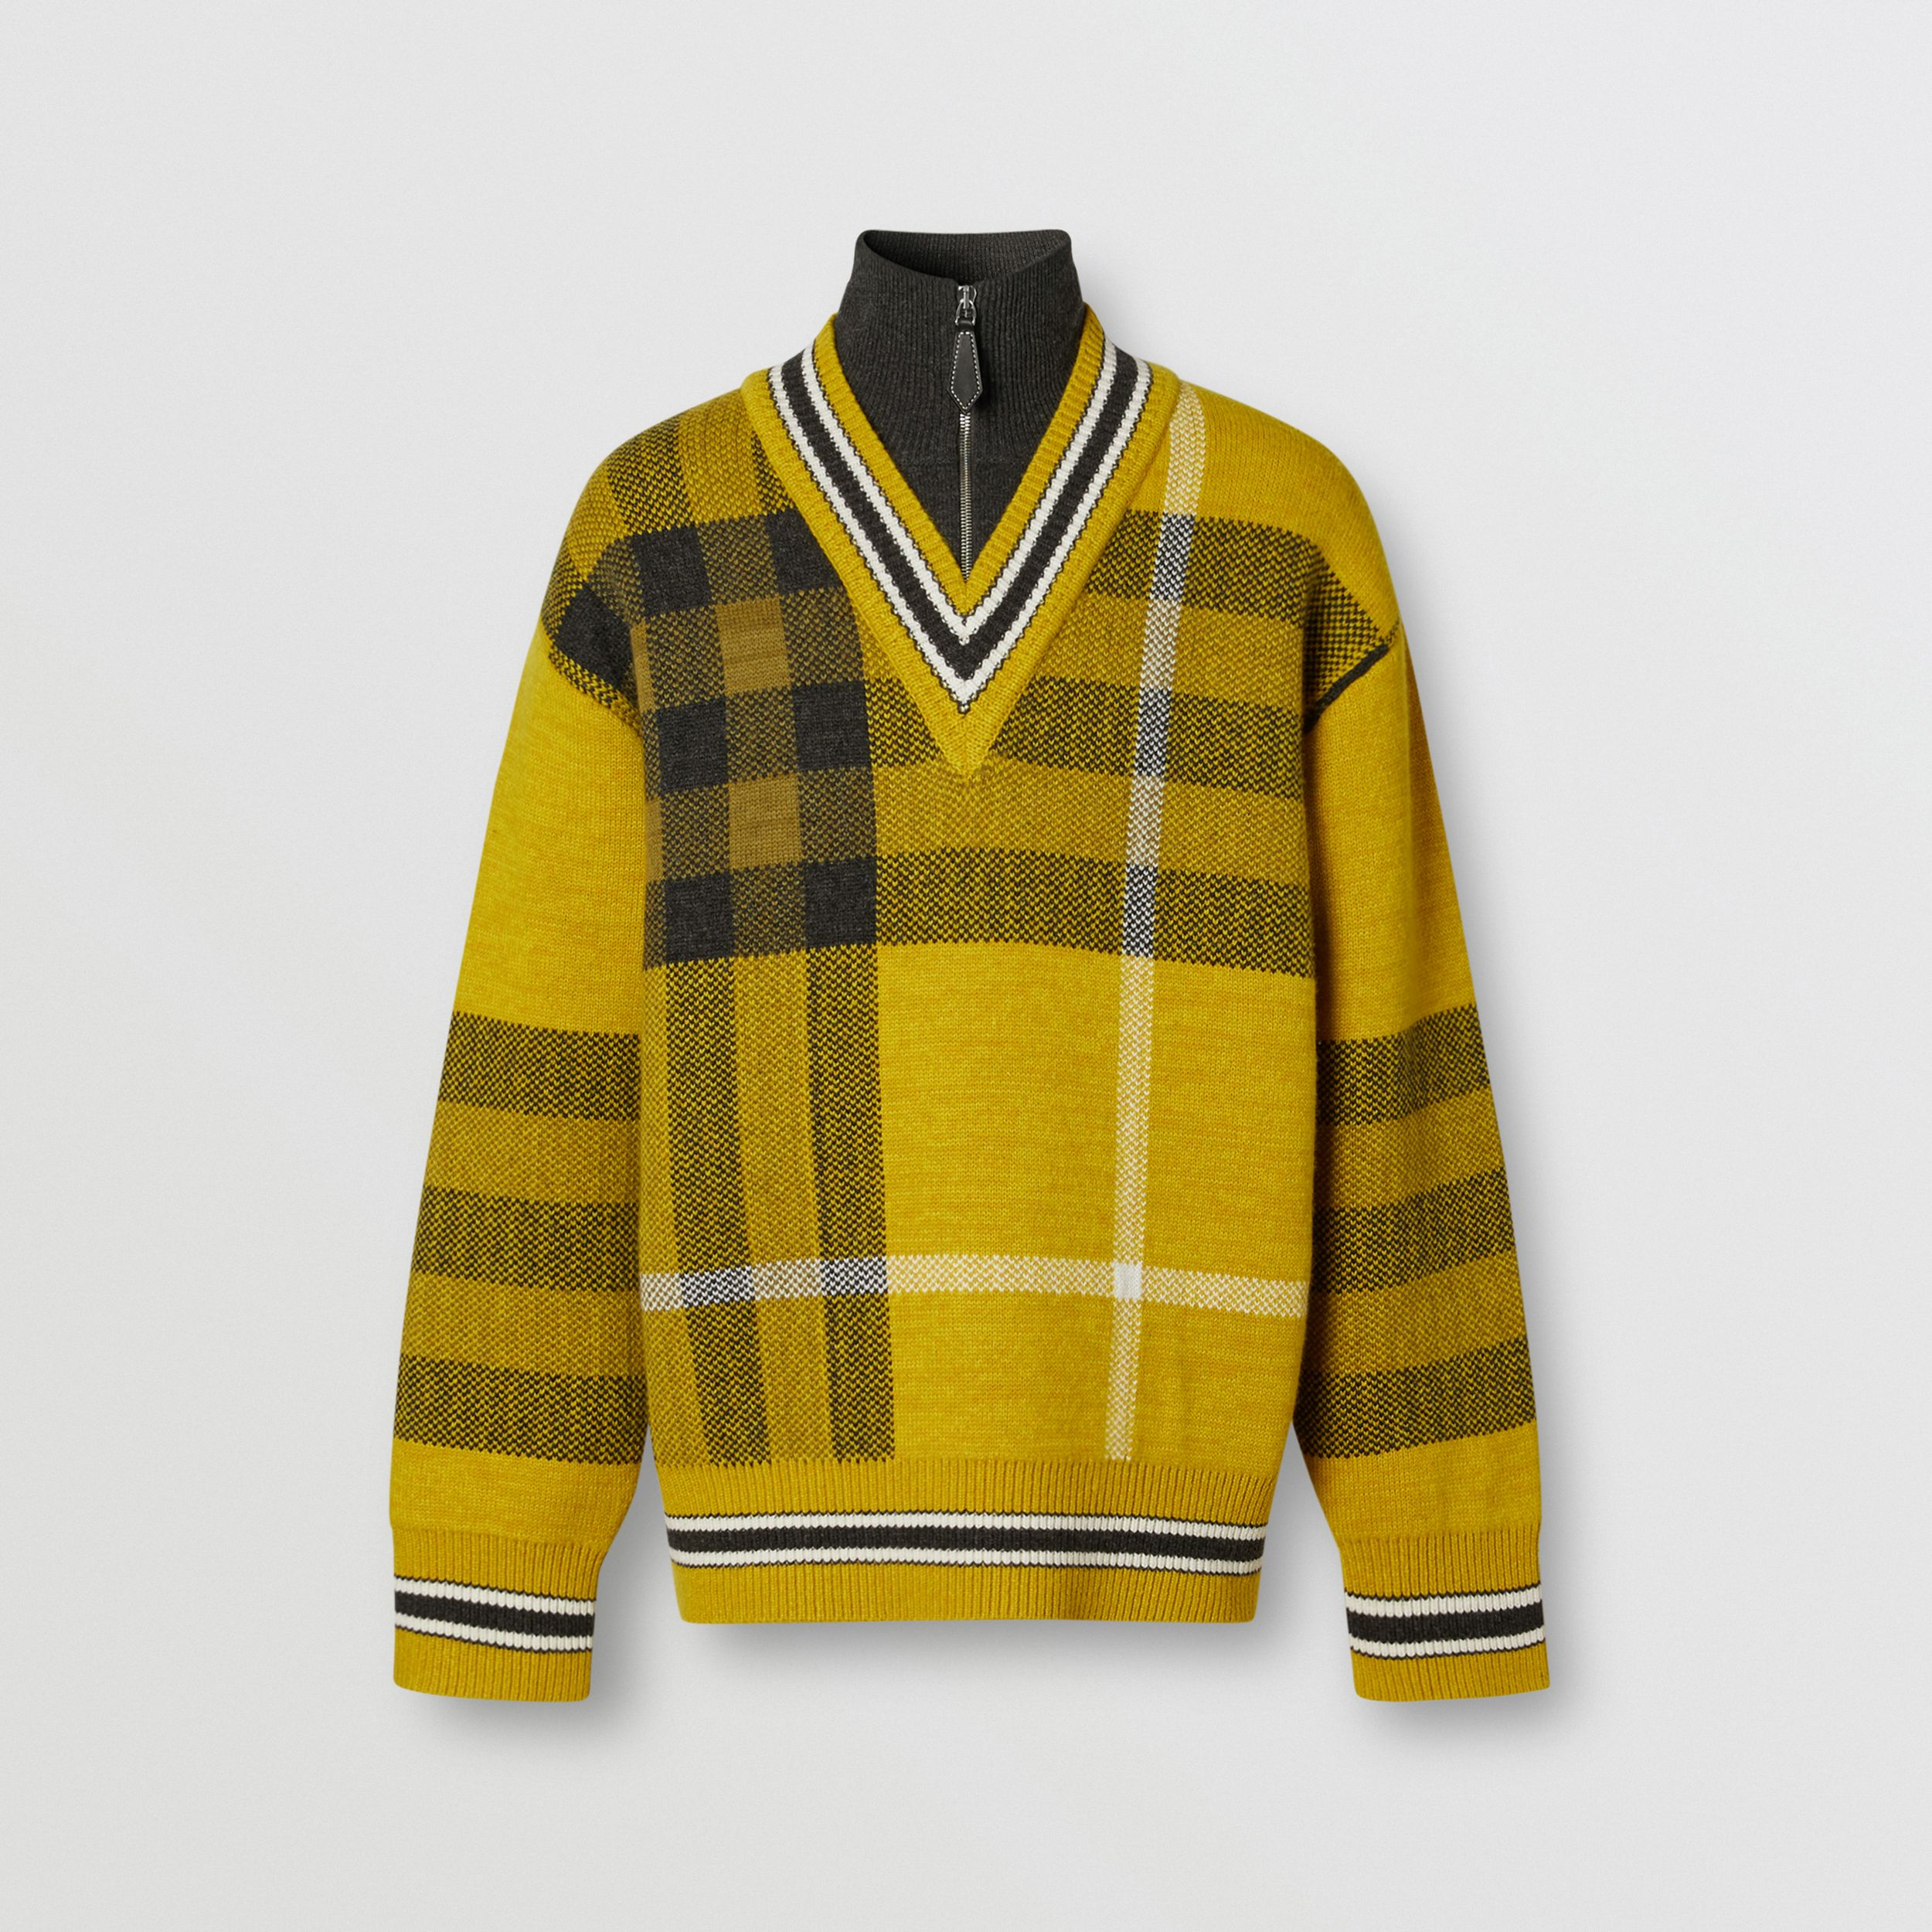 Check Wool Cashmere Jacquard Sweater in Bright Yellow - Men | Burberry - 4